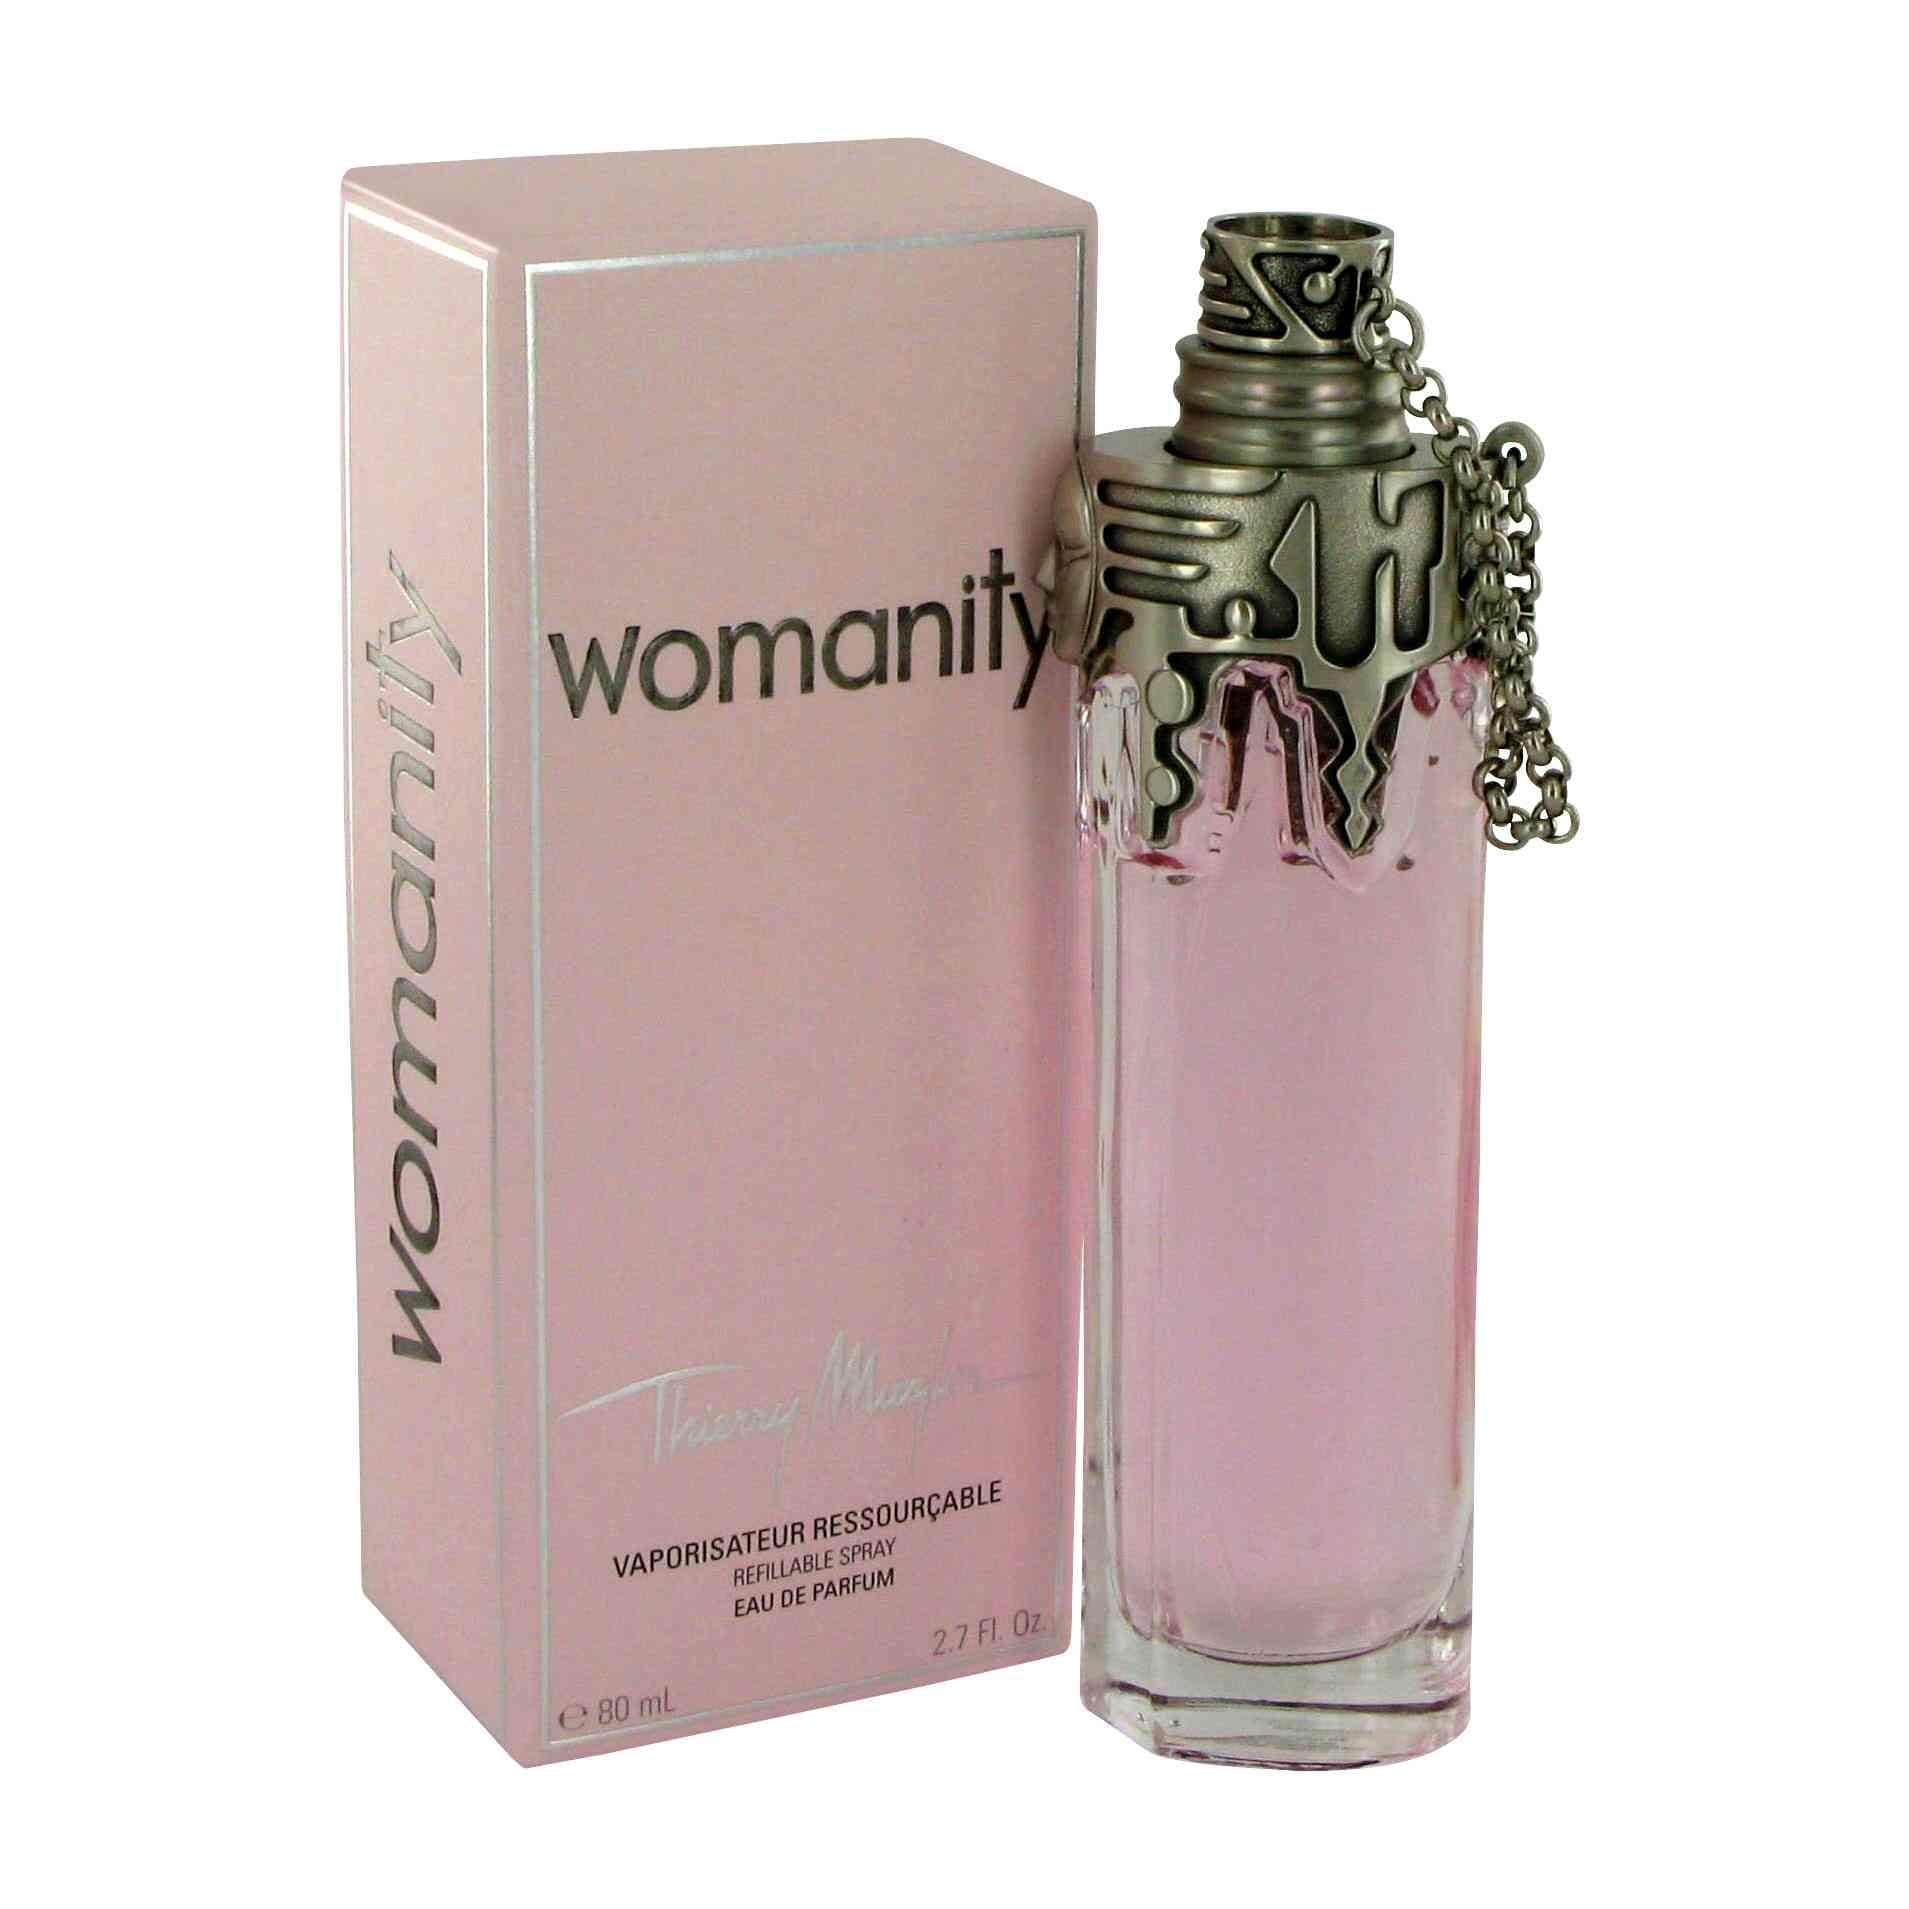 thierry mugler 39 womanity 39 women 39 s 2 7 ounce eau de parfum spray overstock shopping big. Black Bedroom Furniture Sets. Home Design Ideas